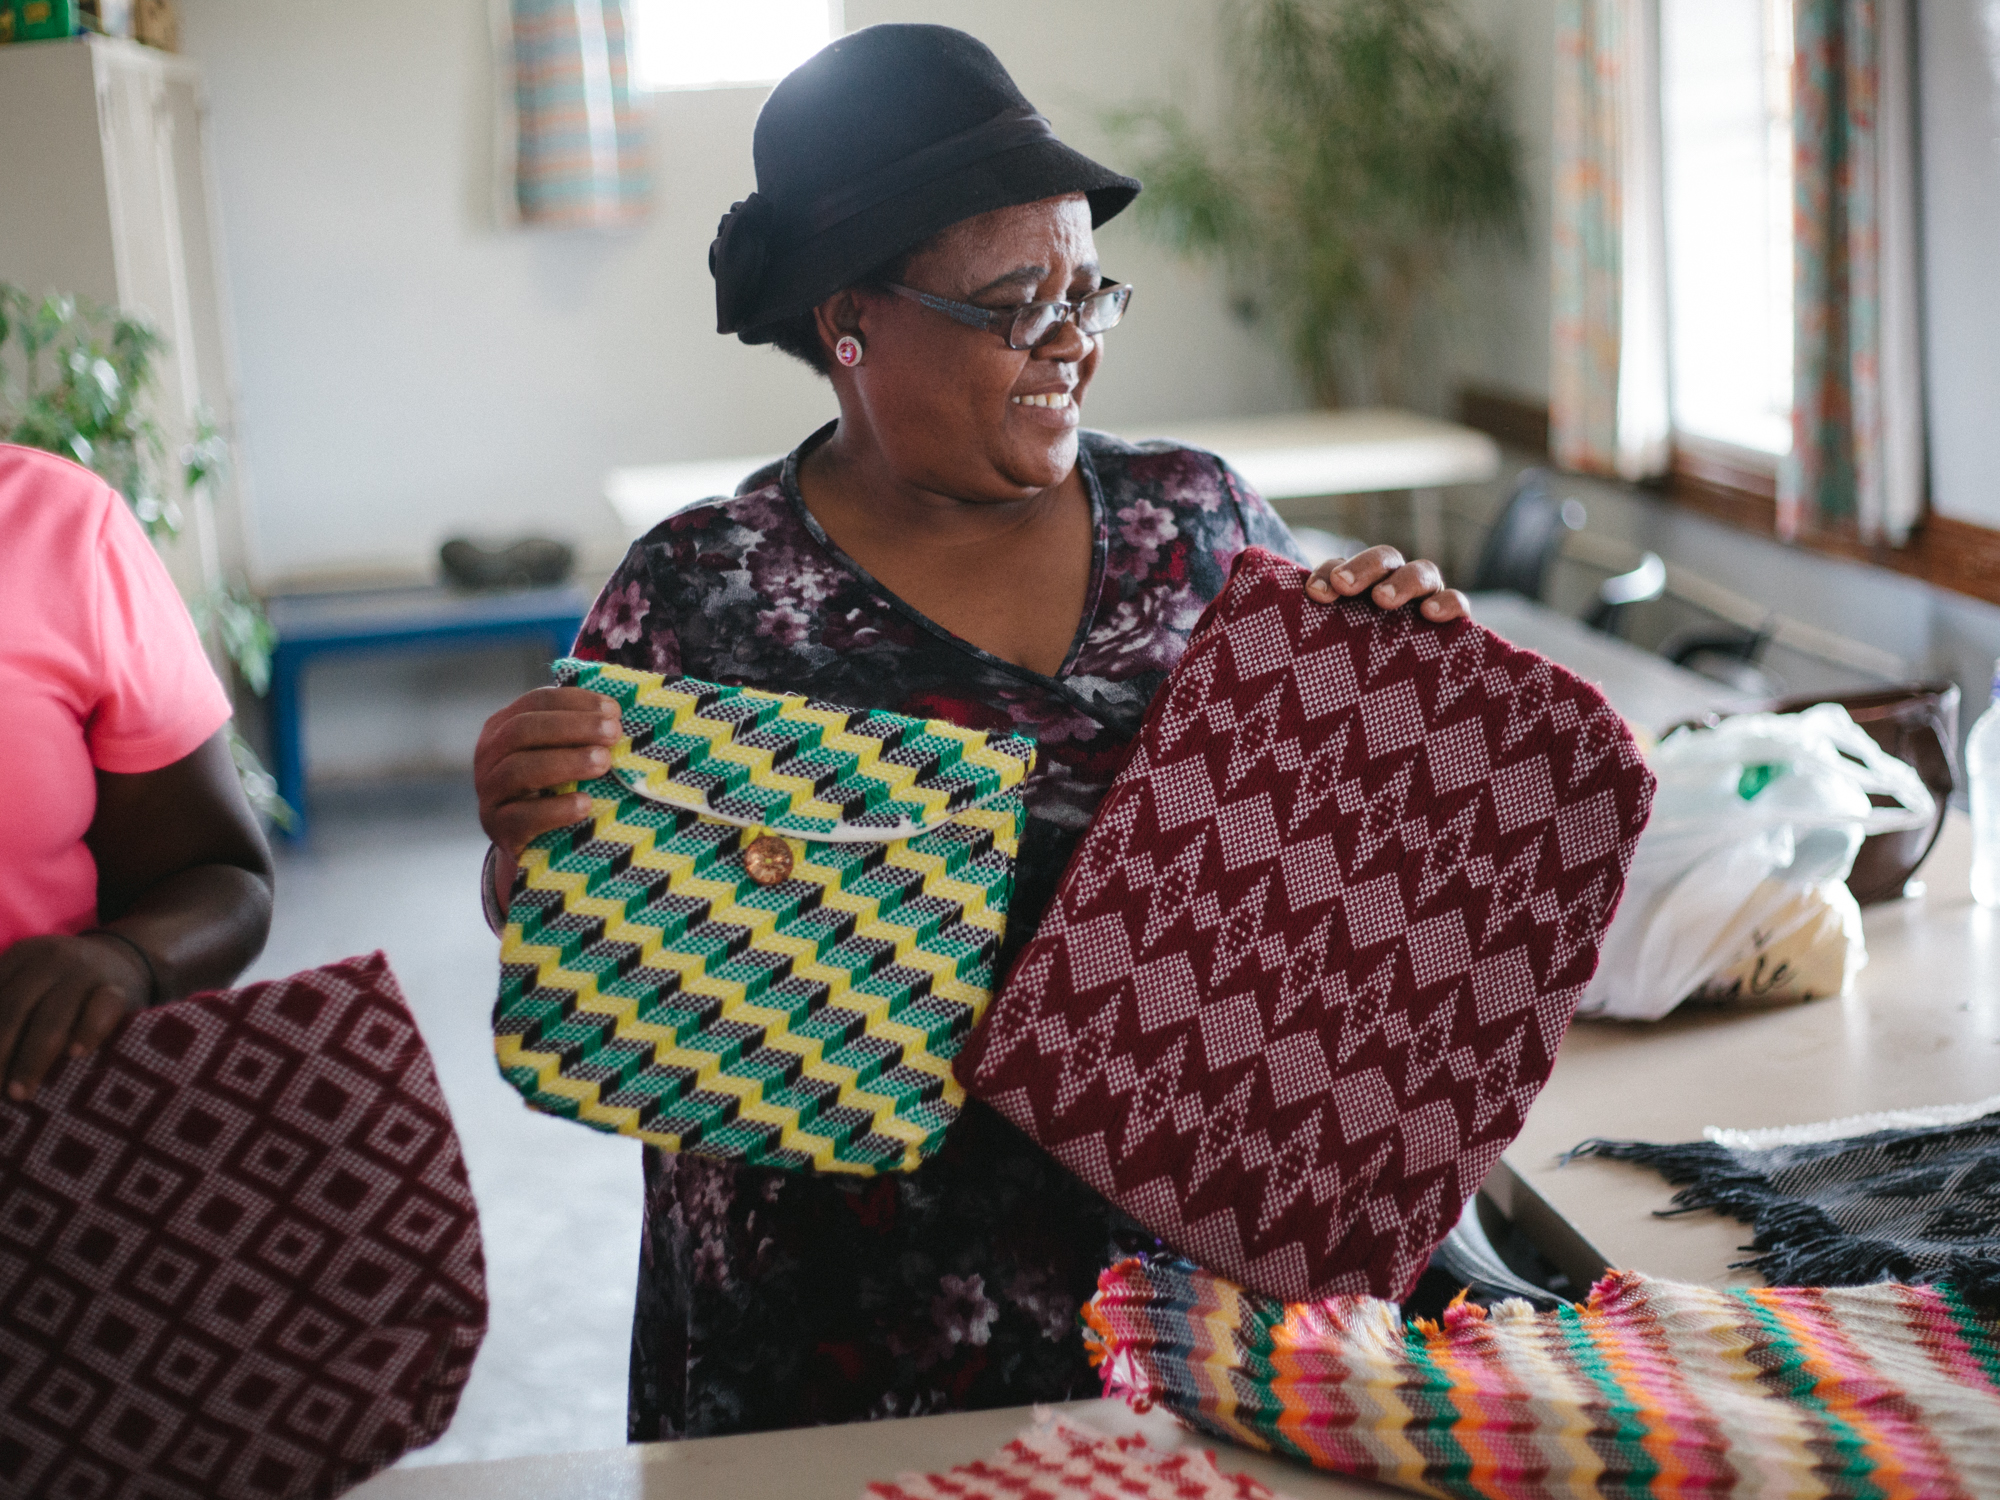 Women at Boitekong in Bloemfontein create beautiful purses out of thread and used plastic bags. They sell the bags to raise money for the center.